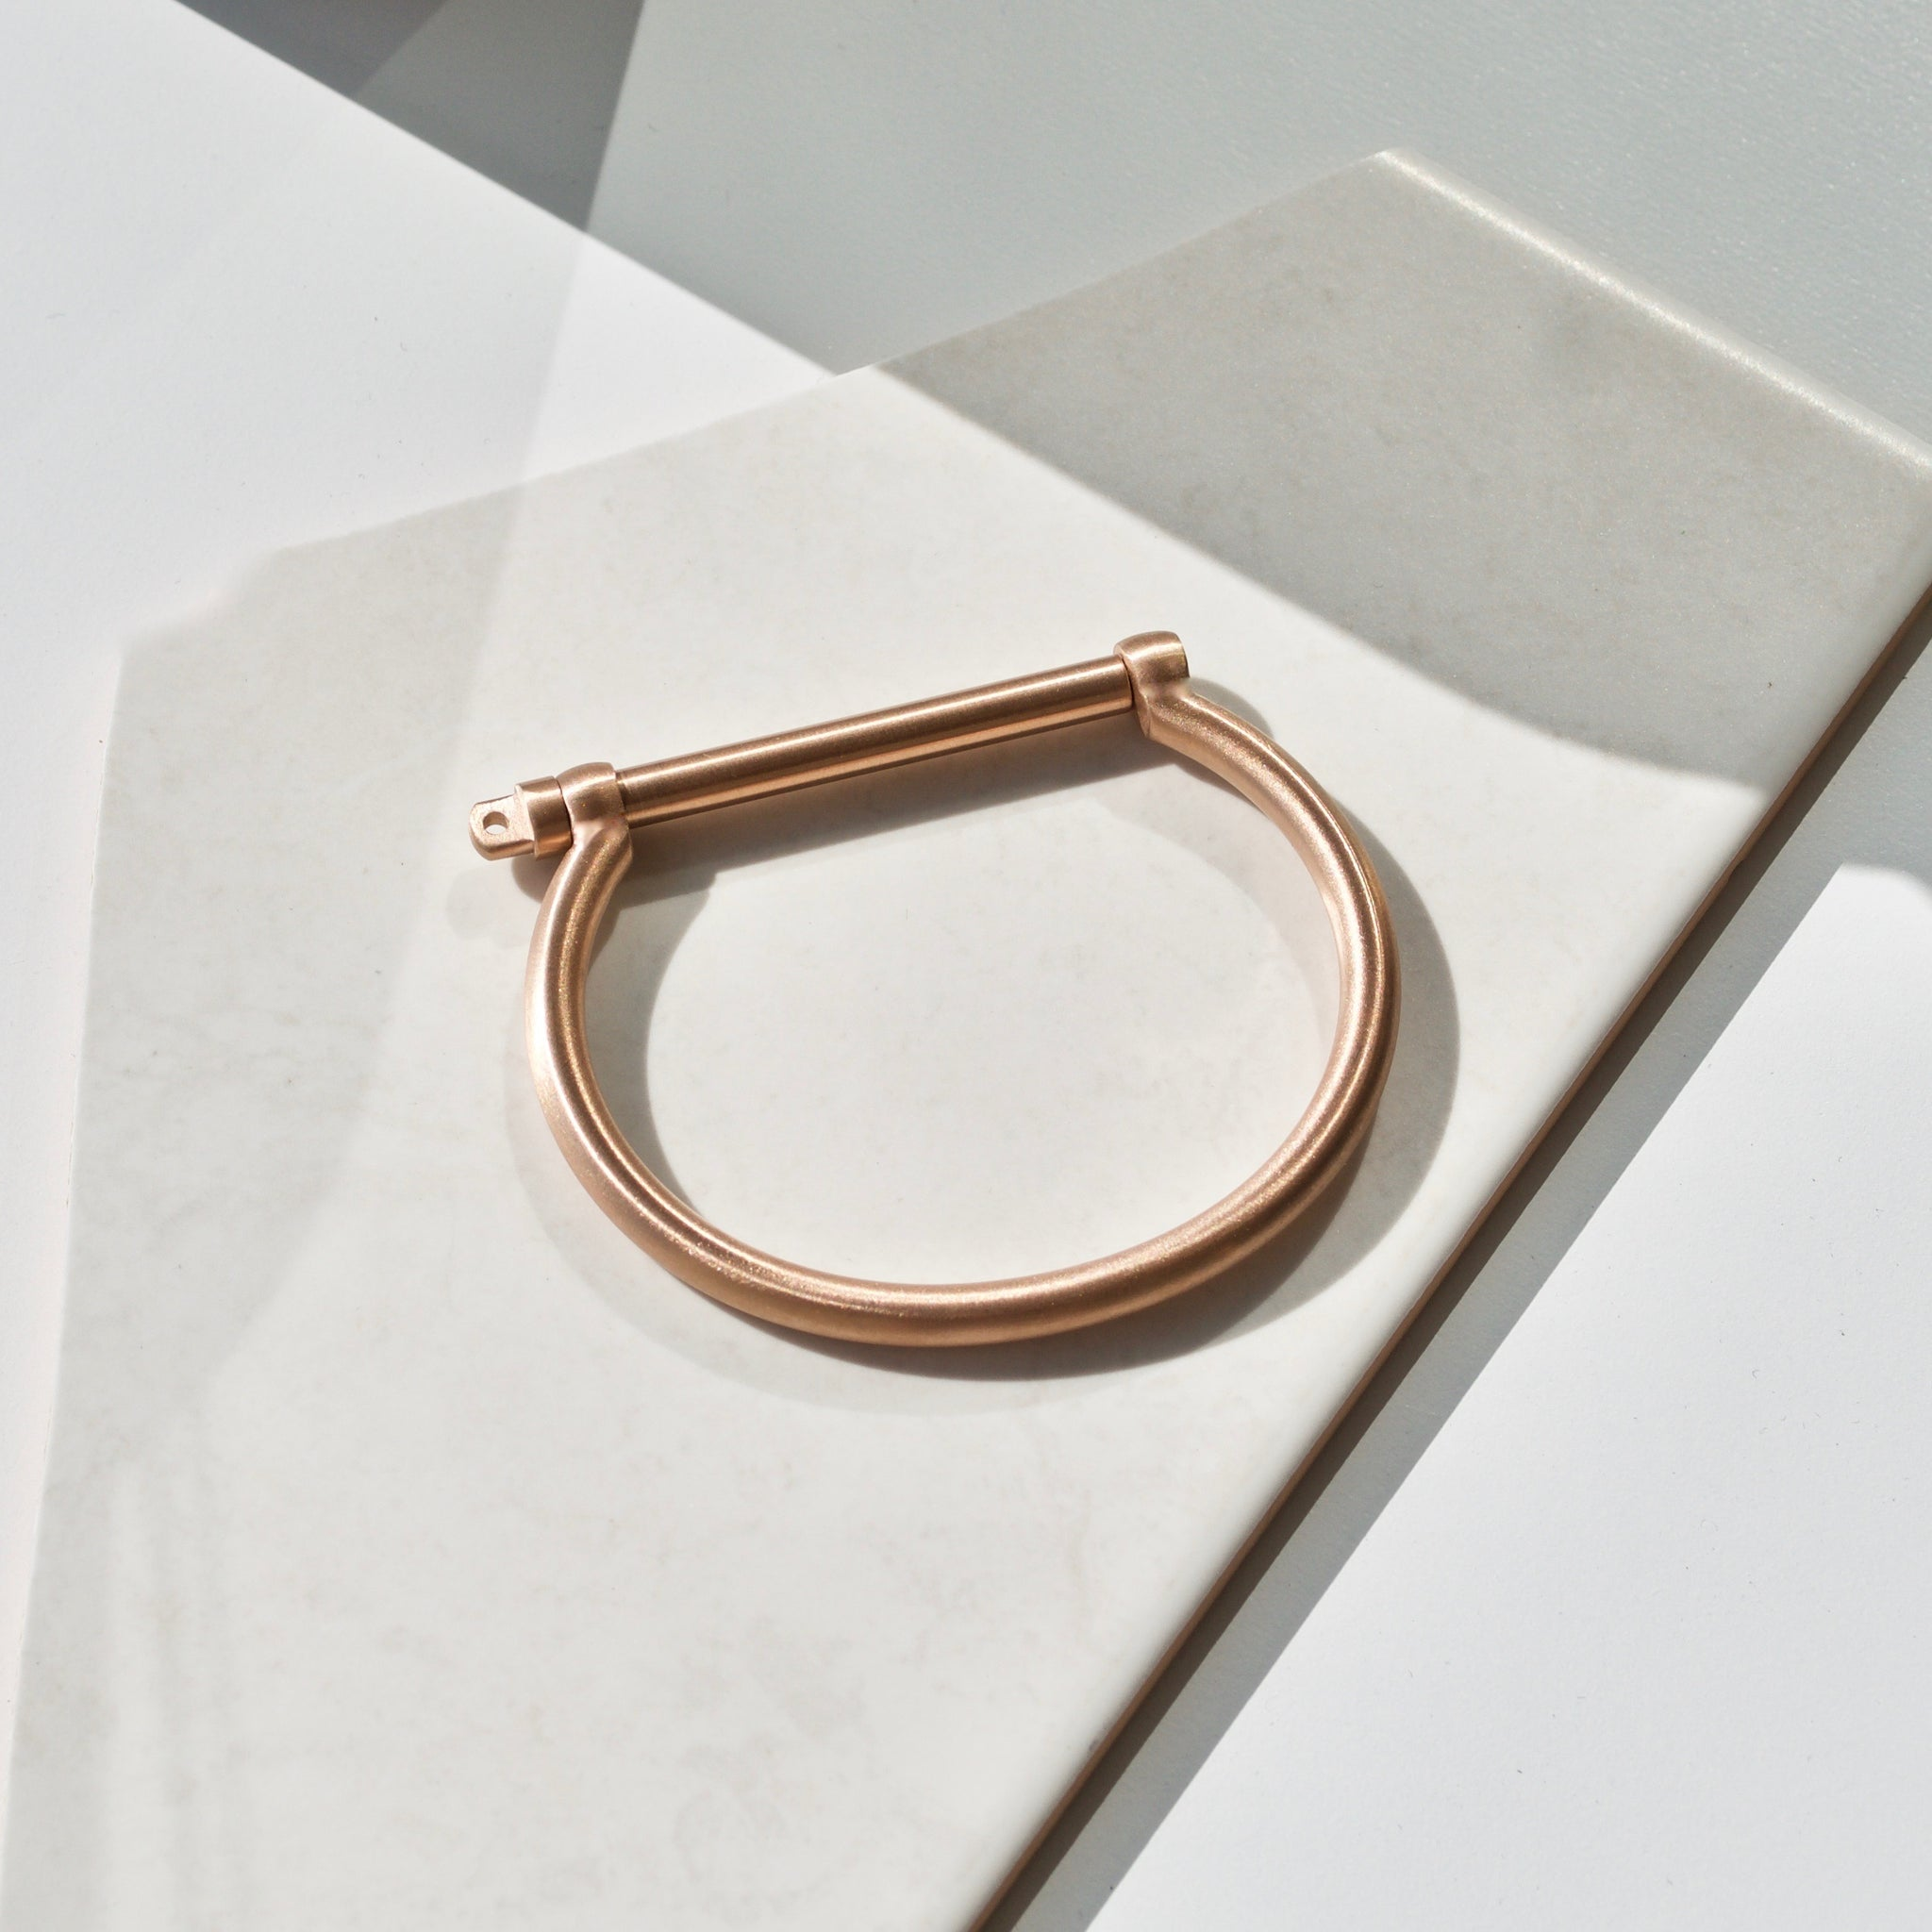 ROSE GOLD PETITE SCREW CUFF